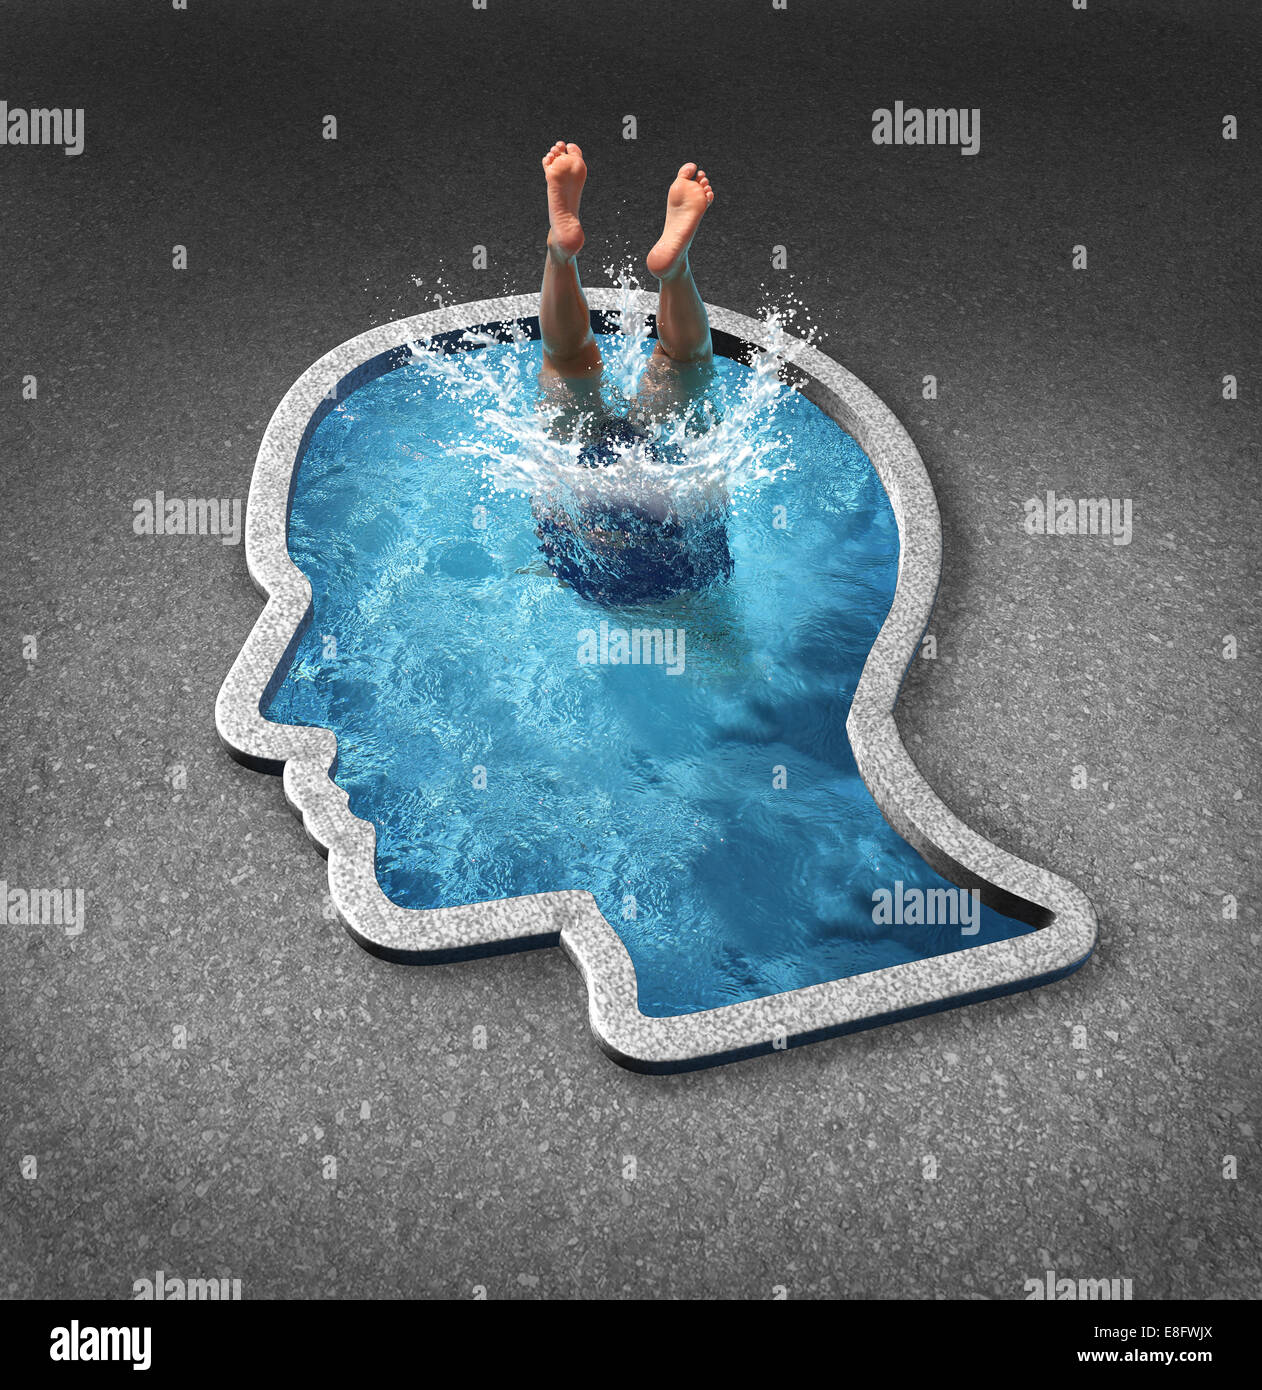 Deep thinking and soul searching concept with a person diving into a swimming pool shaped as a human face as a symbol of self examination and mental health issues related to inner feelings and emotions. Stock Photo